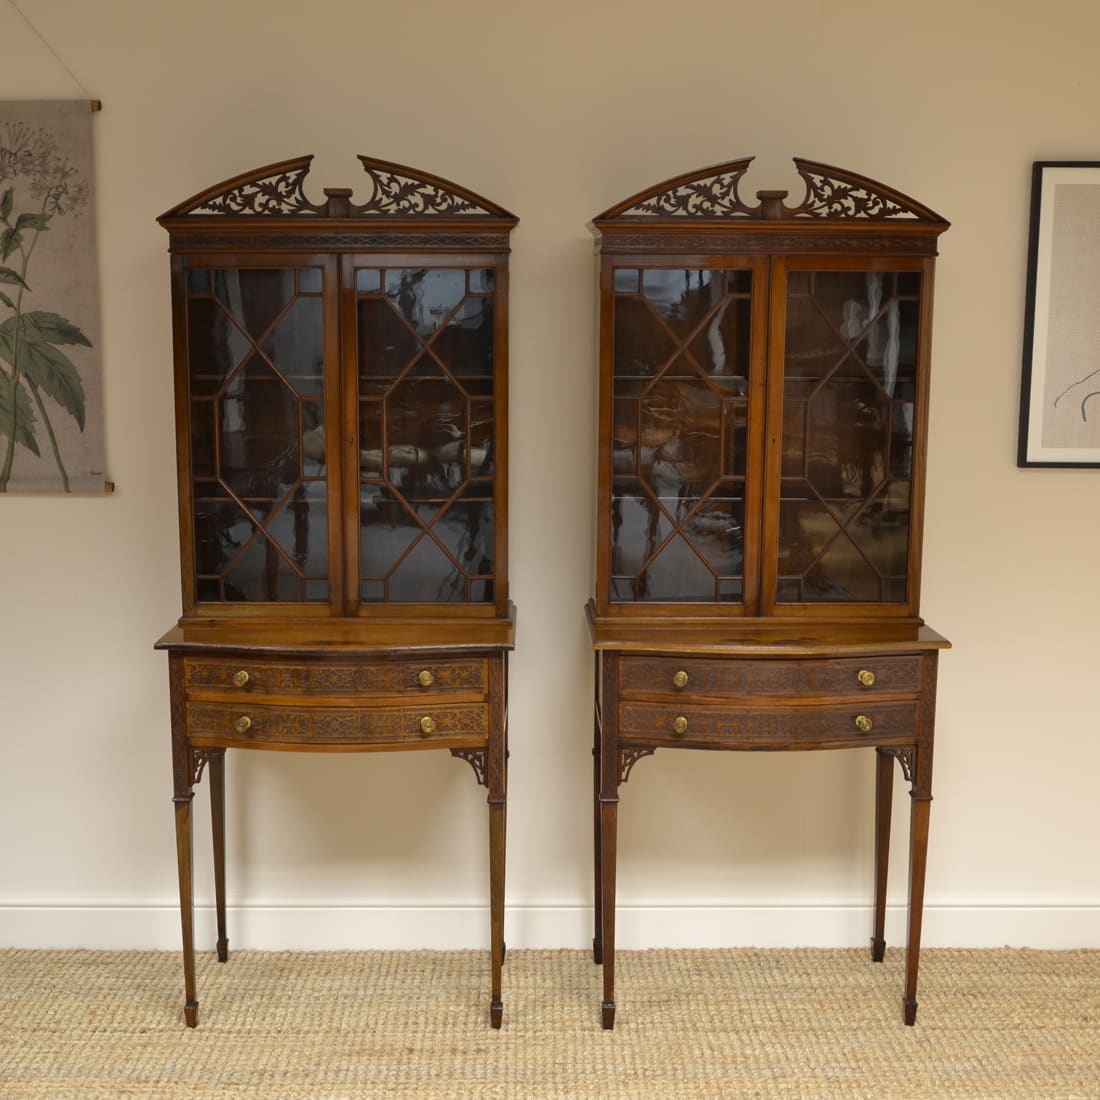 Chippendale Design Edwardian Walnut Pair of Antique Bookcases